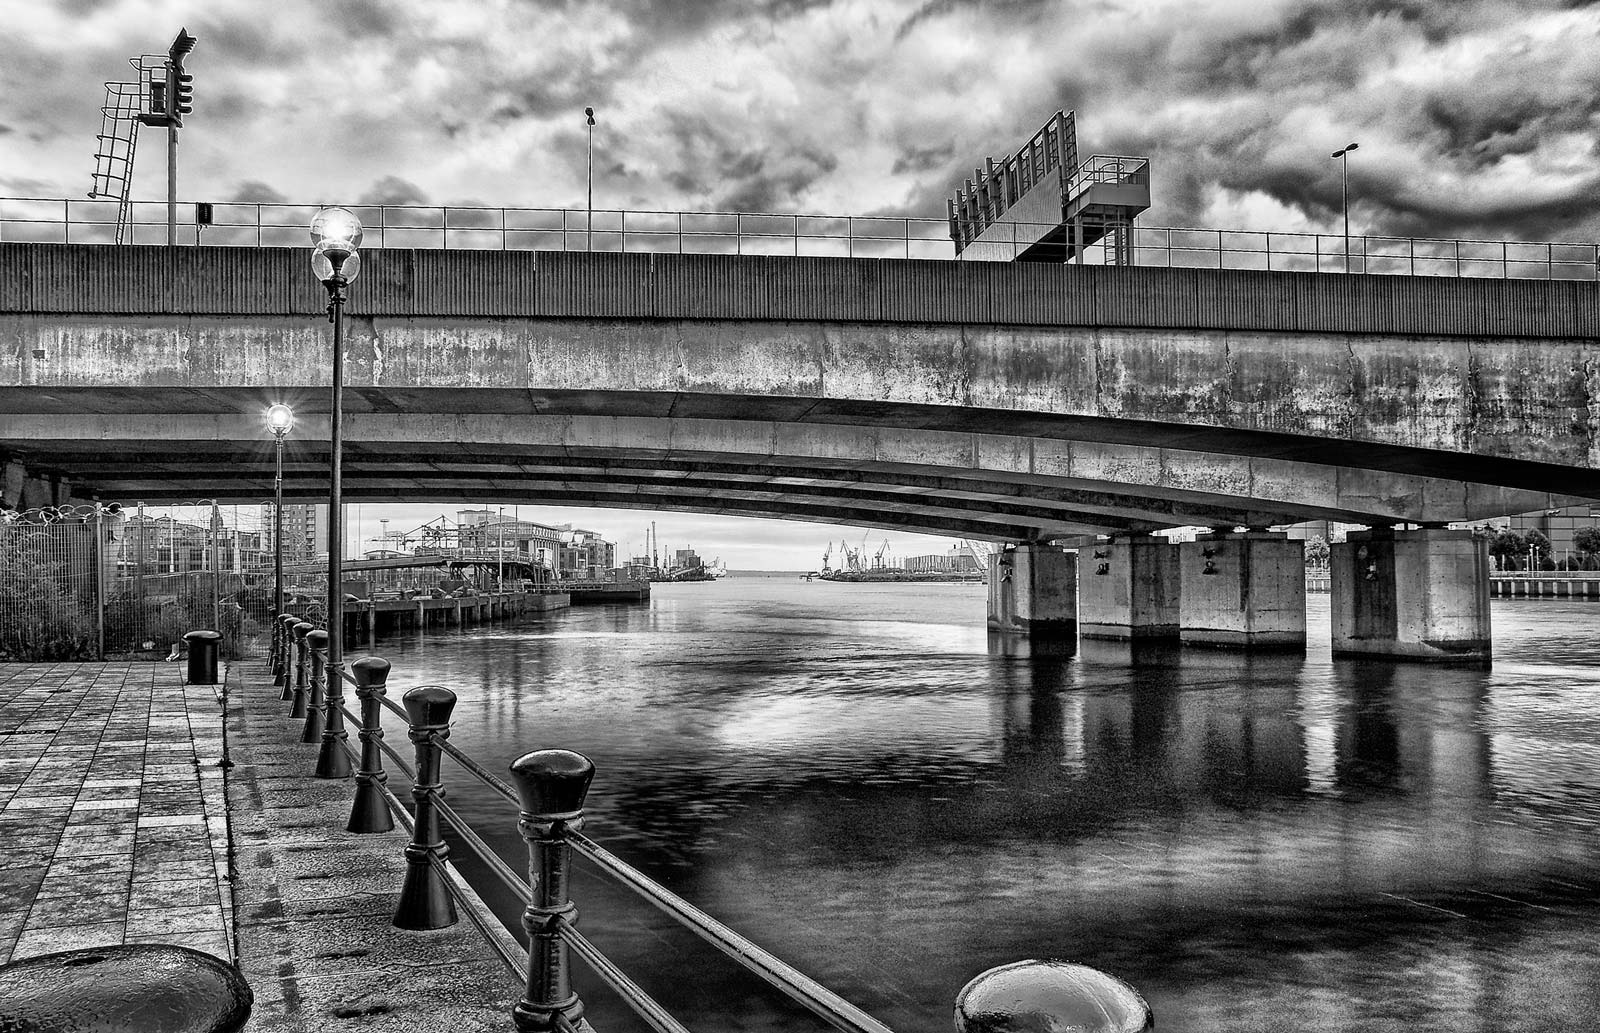 Donegal Quay, Overlooking the River Lagan by Geoff McGrath